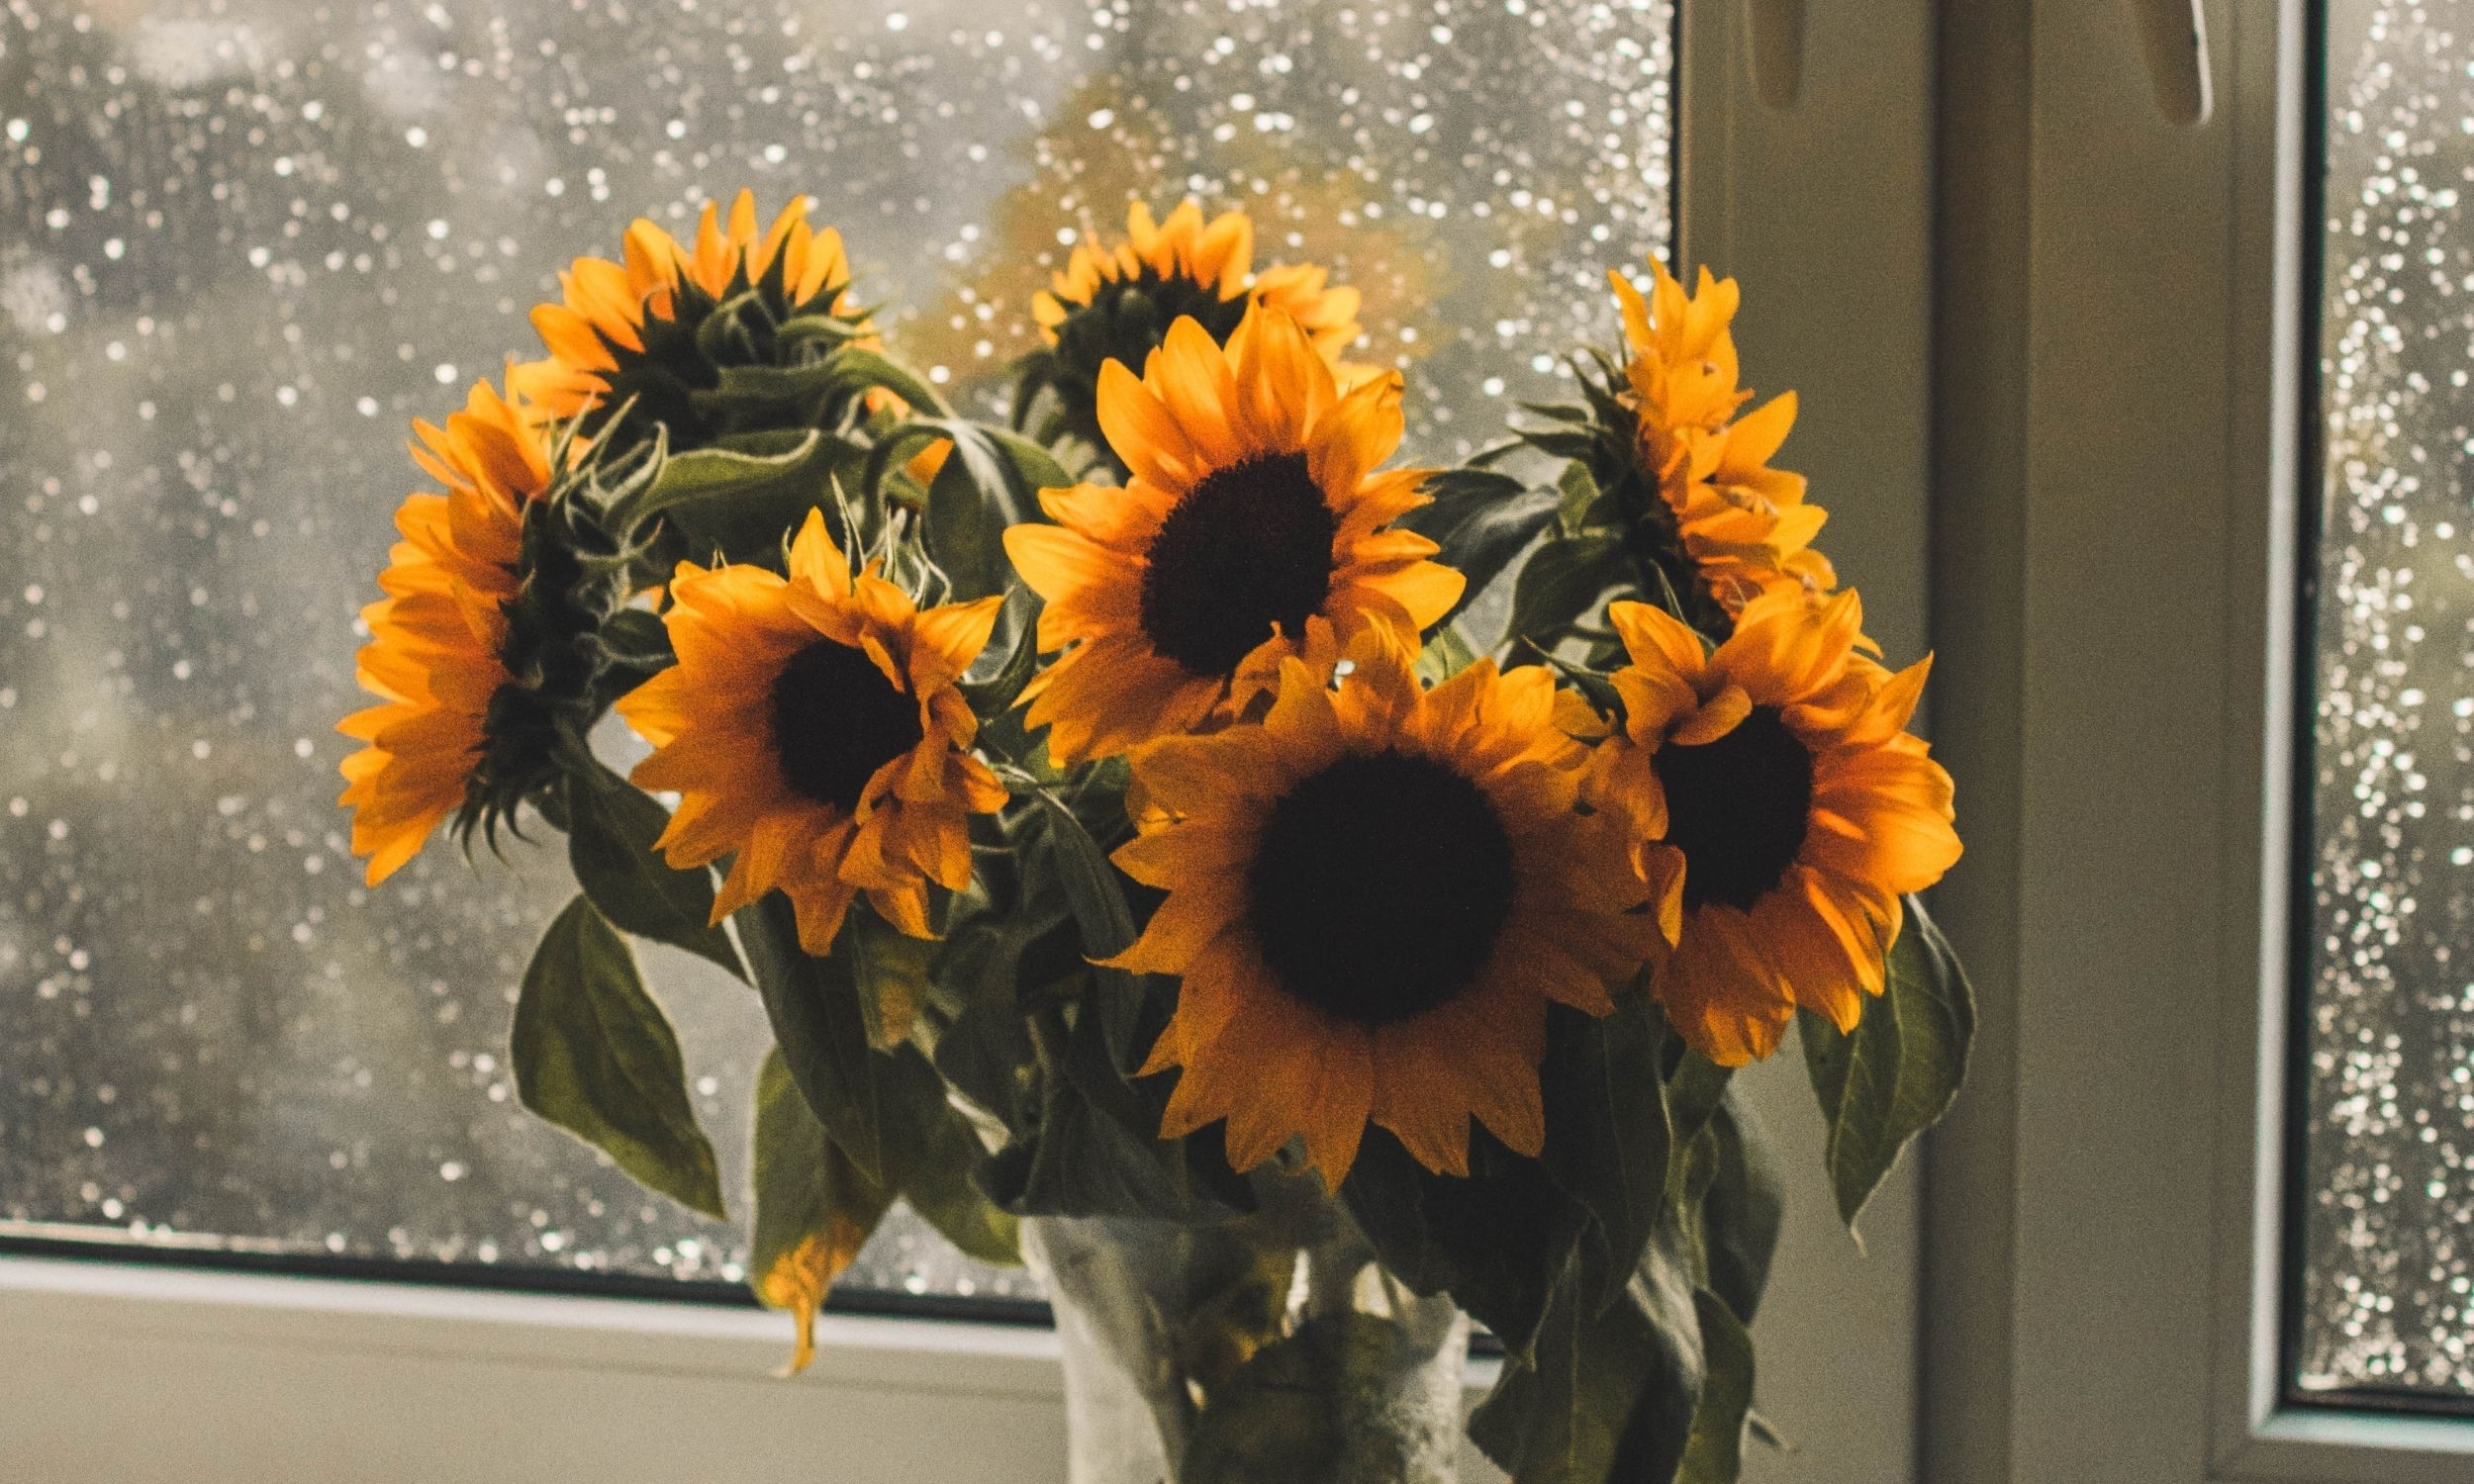 sunflowers in a vase on a window sile